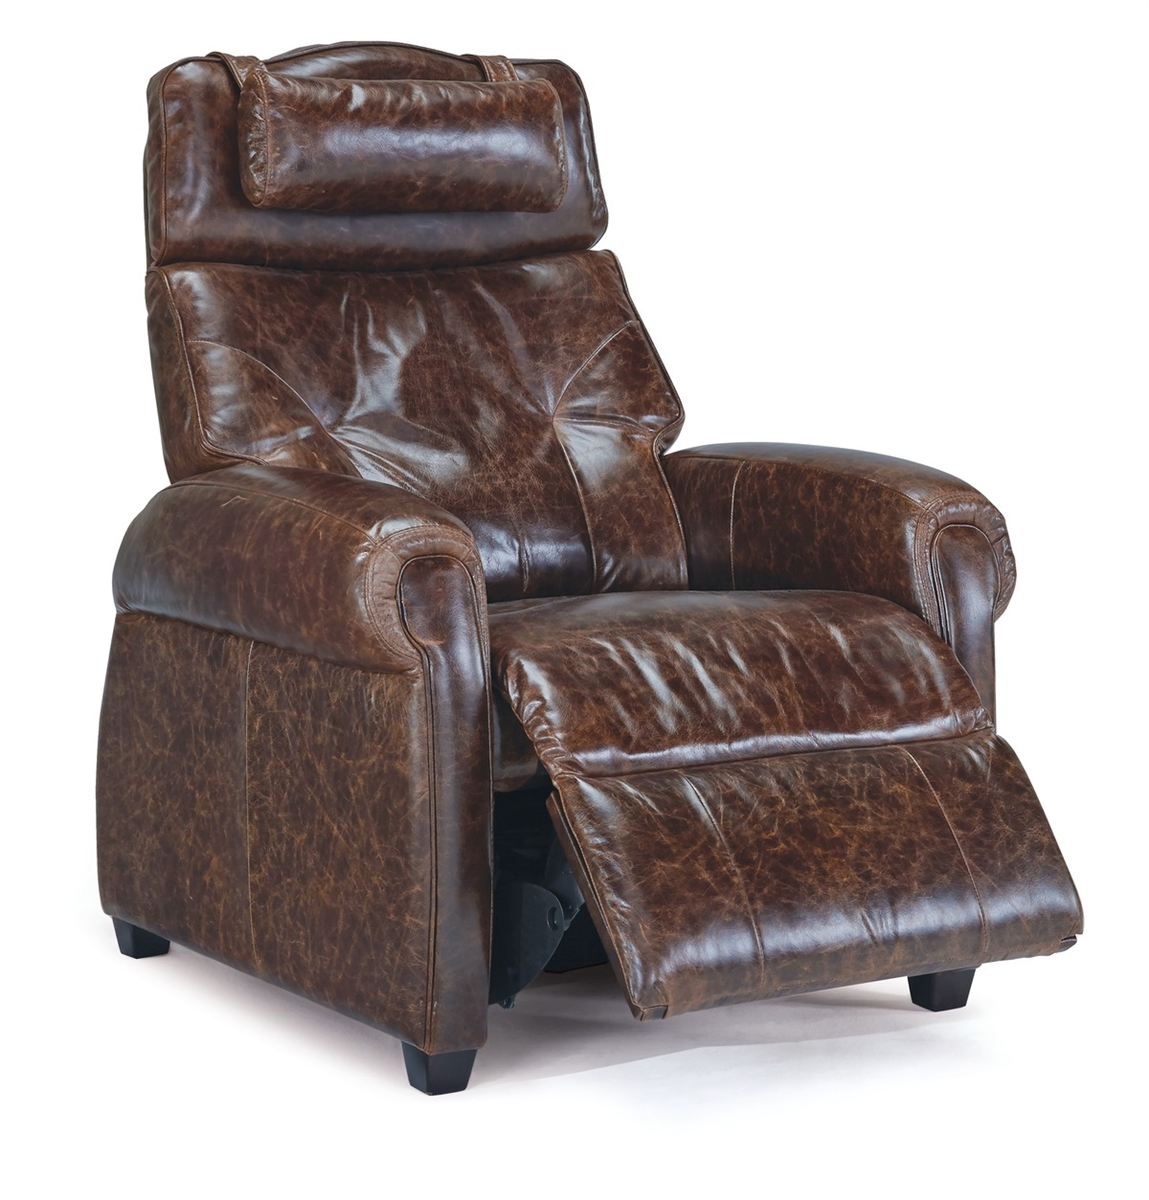 recliner gray outdoor goods p speckled s dick chair recliners sporting gci zero is gravity